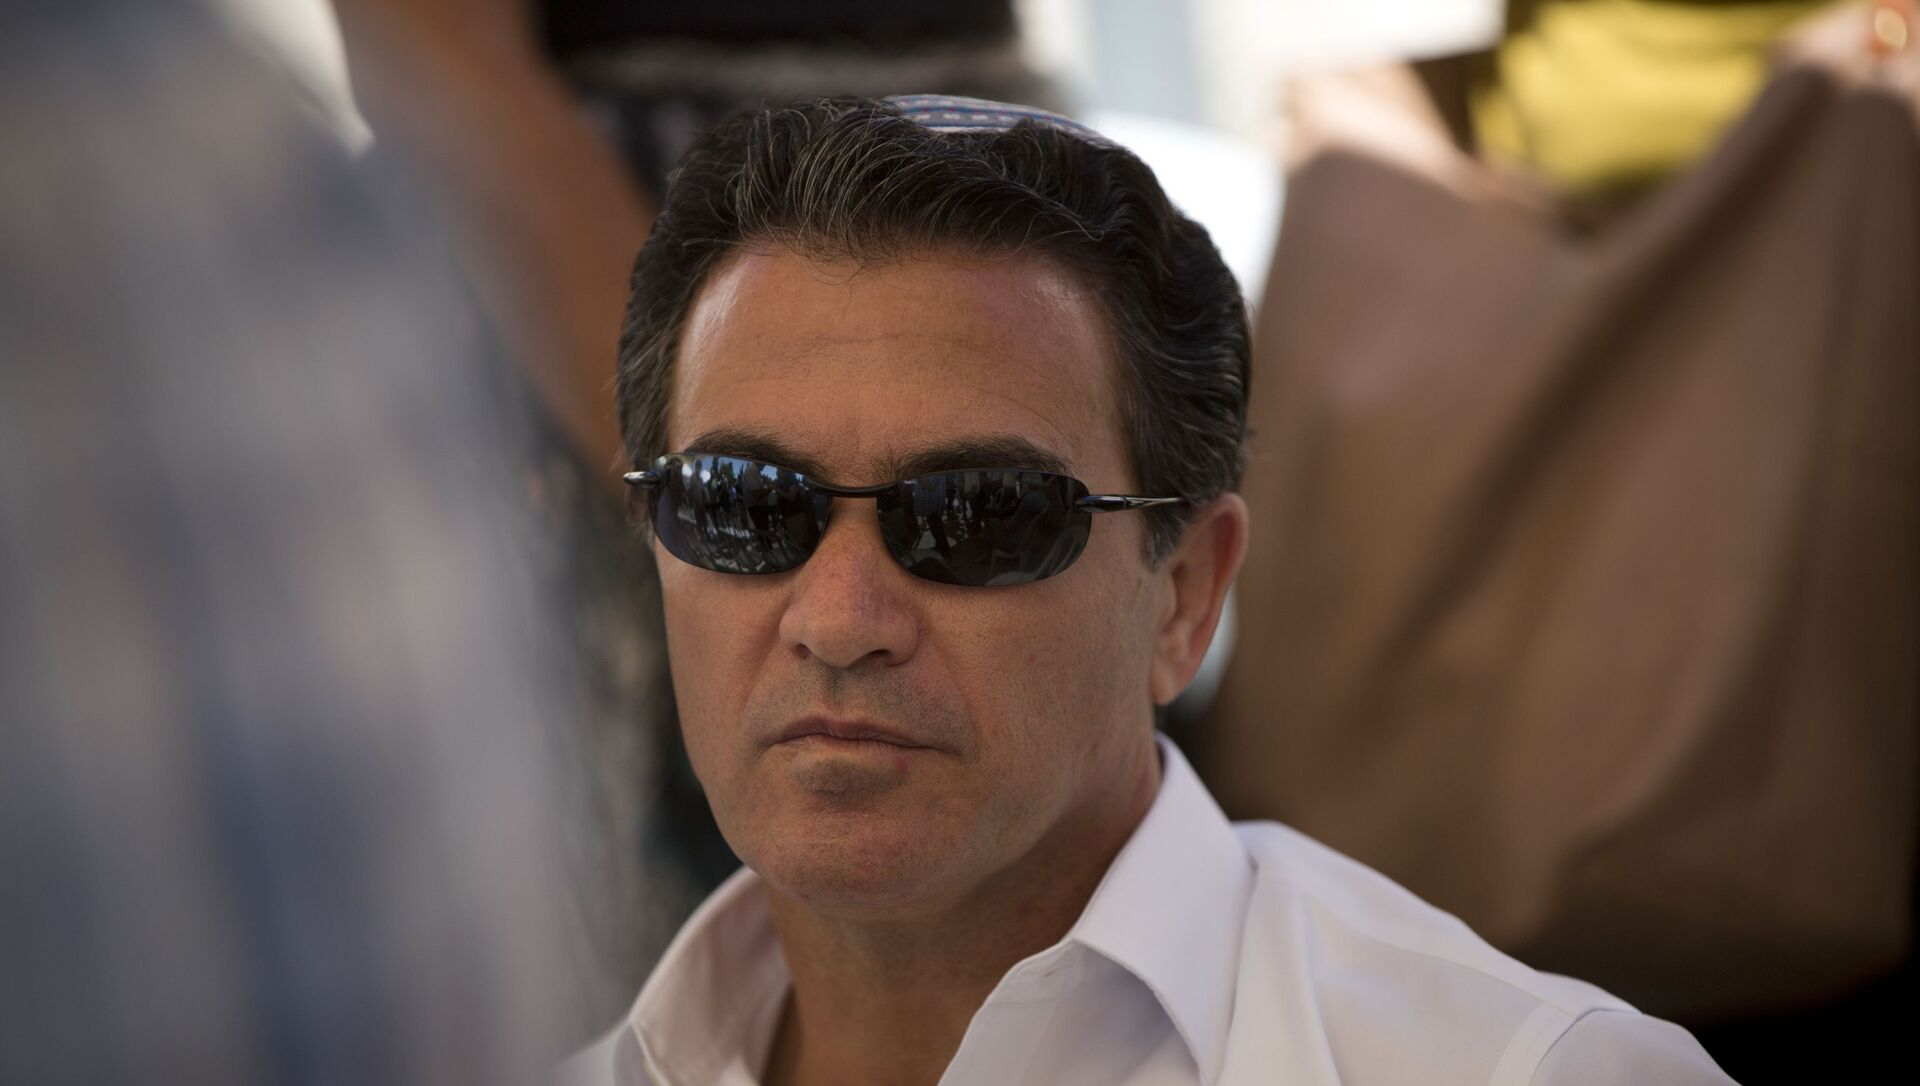 In this Sunday, July 3, 2016. photo, Yossi Cohen, director of Mossad, Israel's state intelligence agency, attends the funeral of Miki Mark who was killed in an shooting attack in the West Bank Friday, in Jerusalem. - Sputnik International, 1920, 16.08.2021